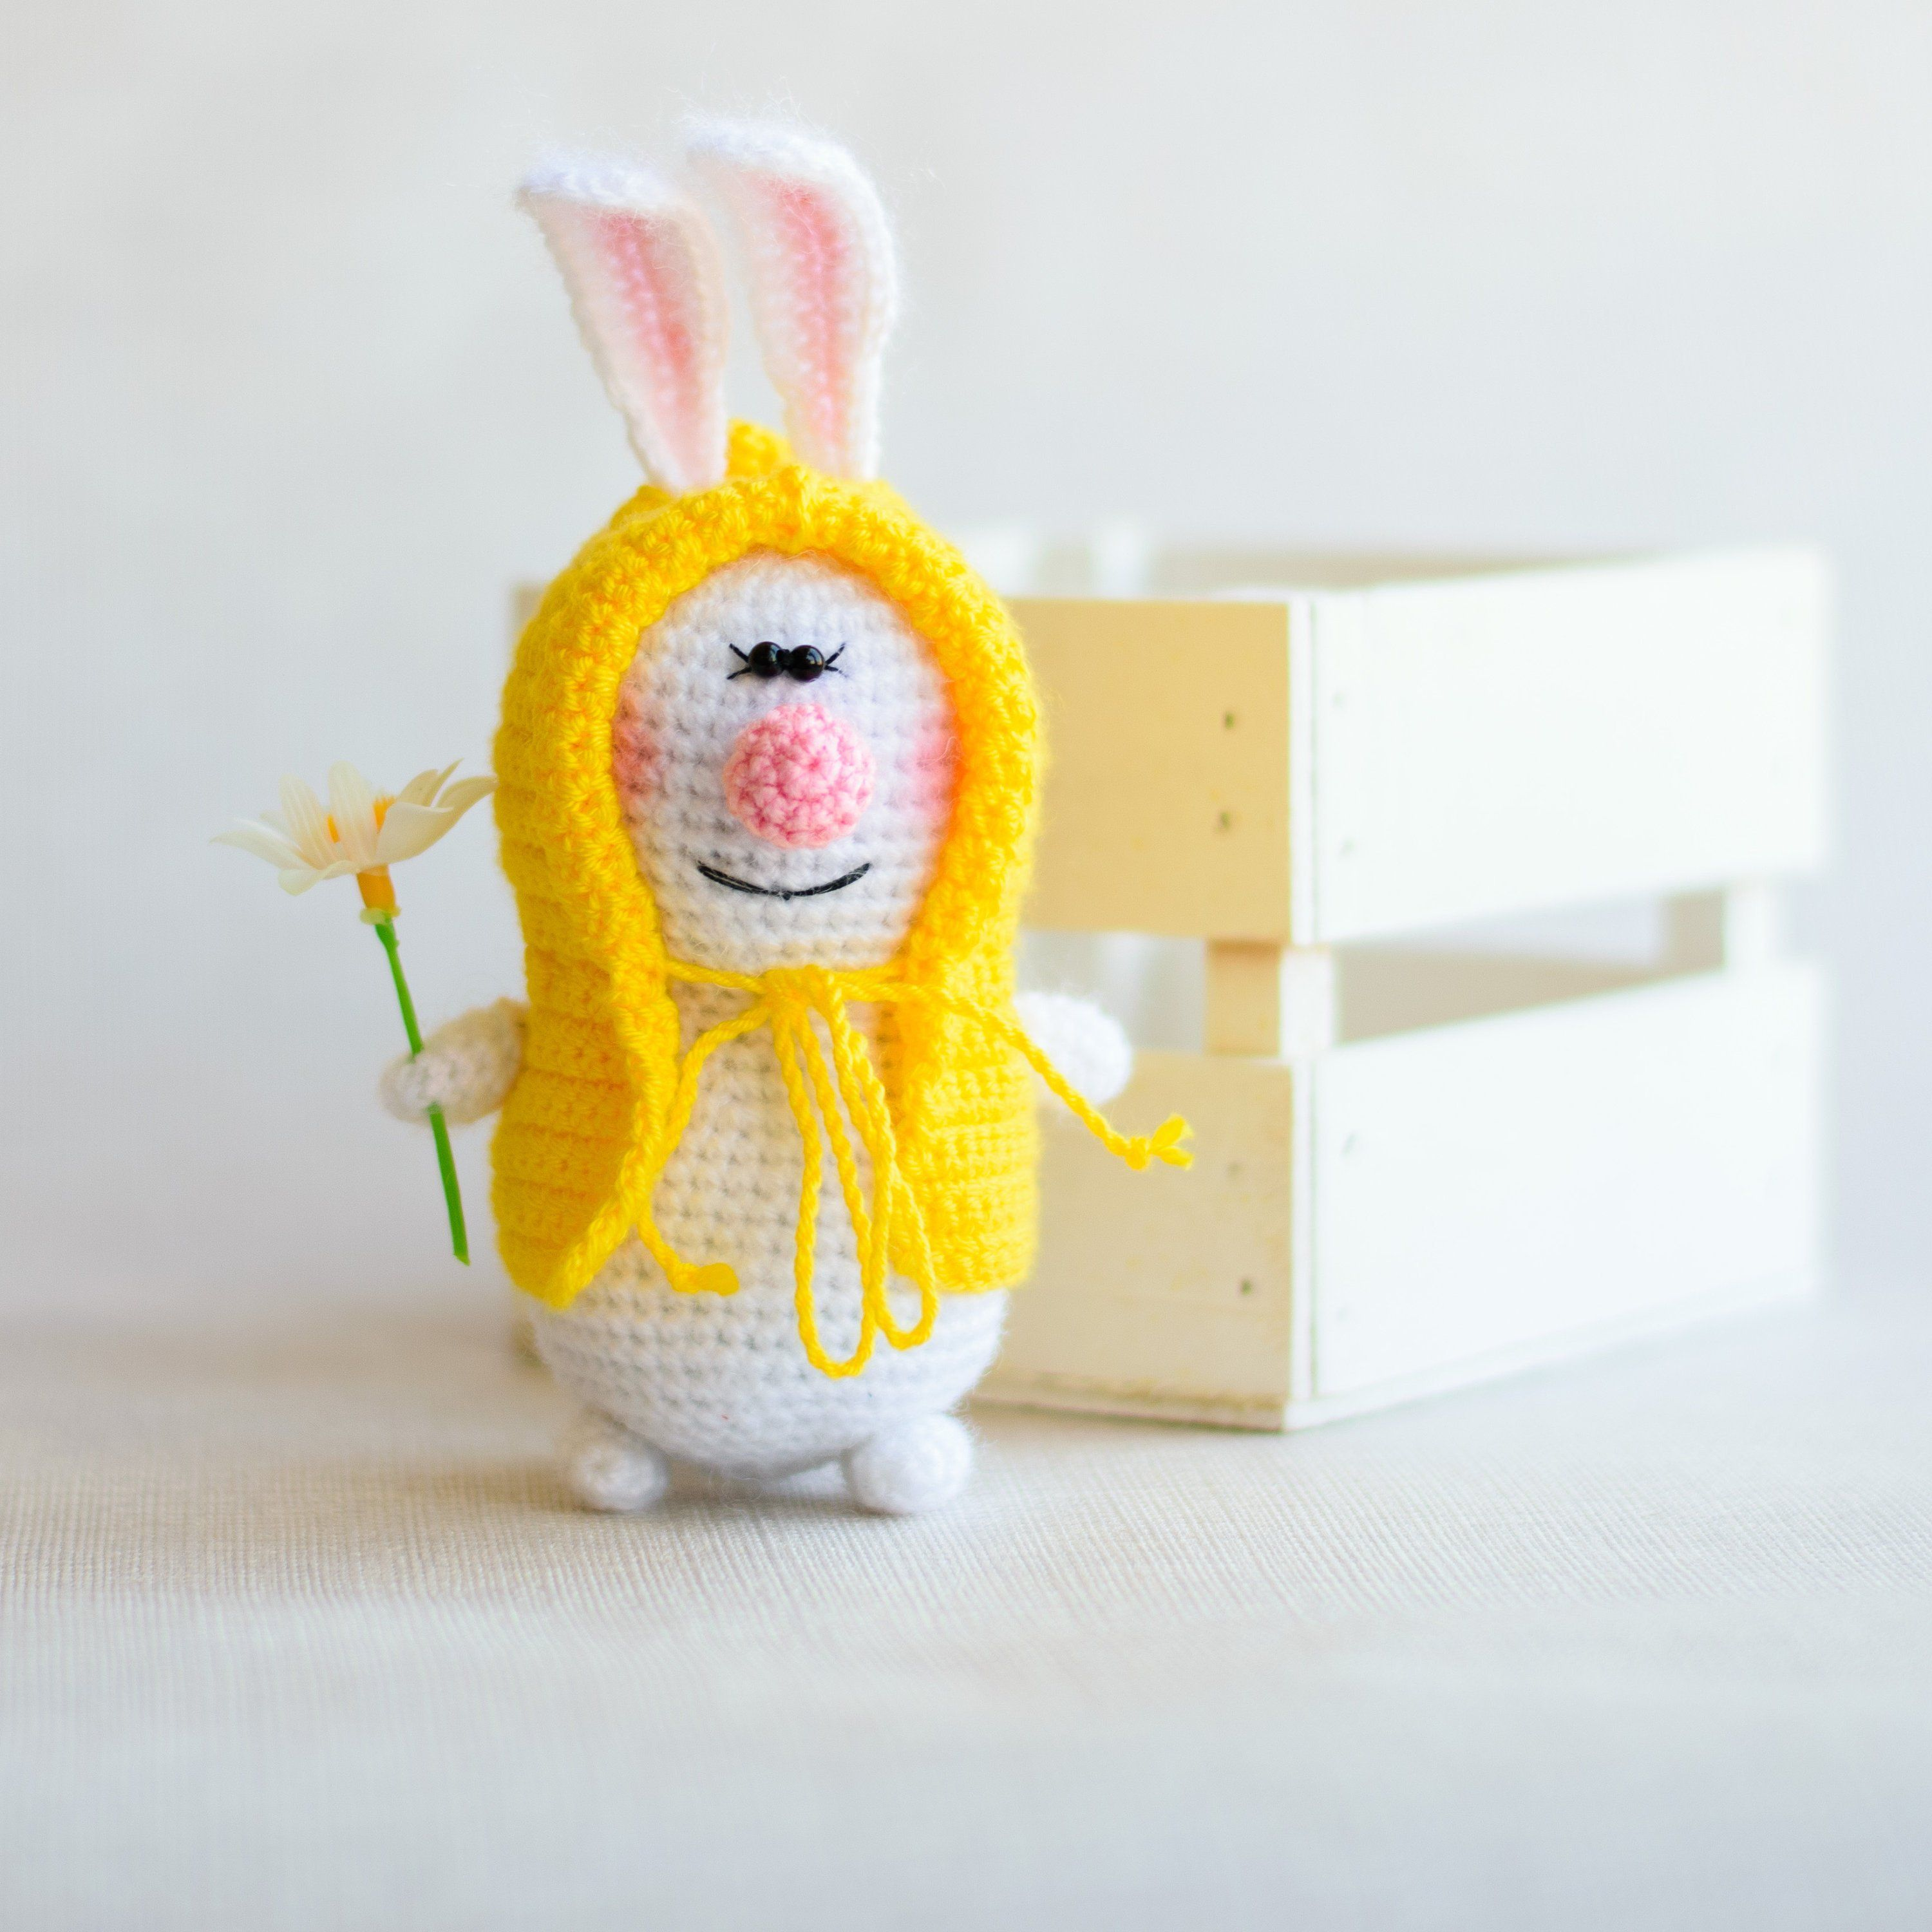 soft toy handmade bunny toy from Angora handmade bunny toy bunny crochet toy amigurumi toy crocheted knitted bunny toy independence day gift